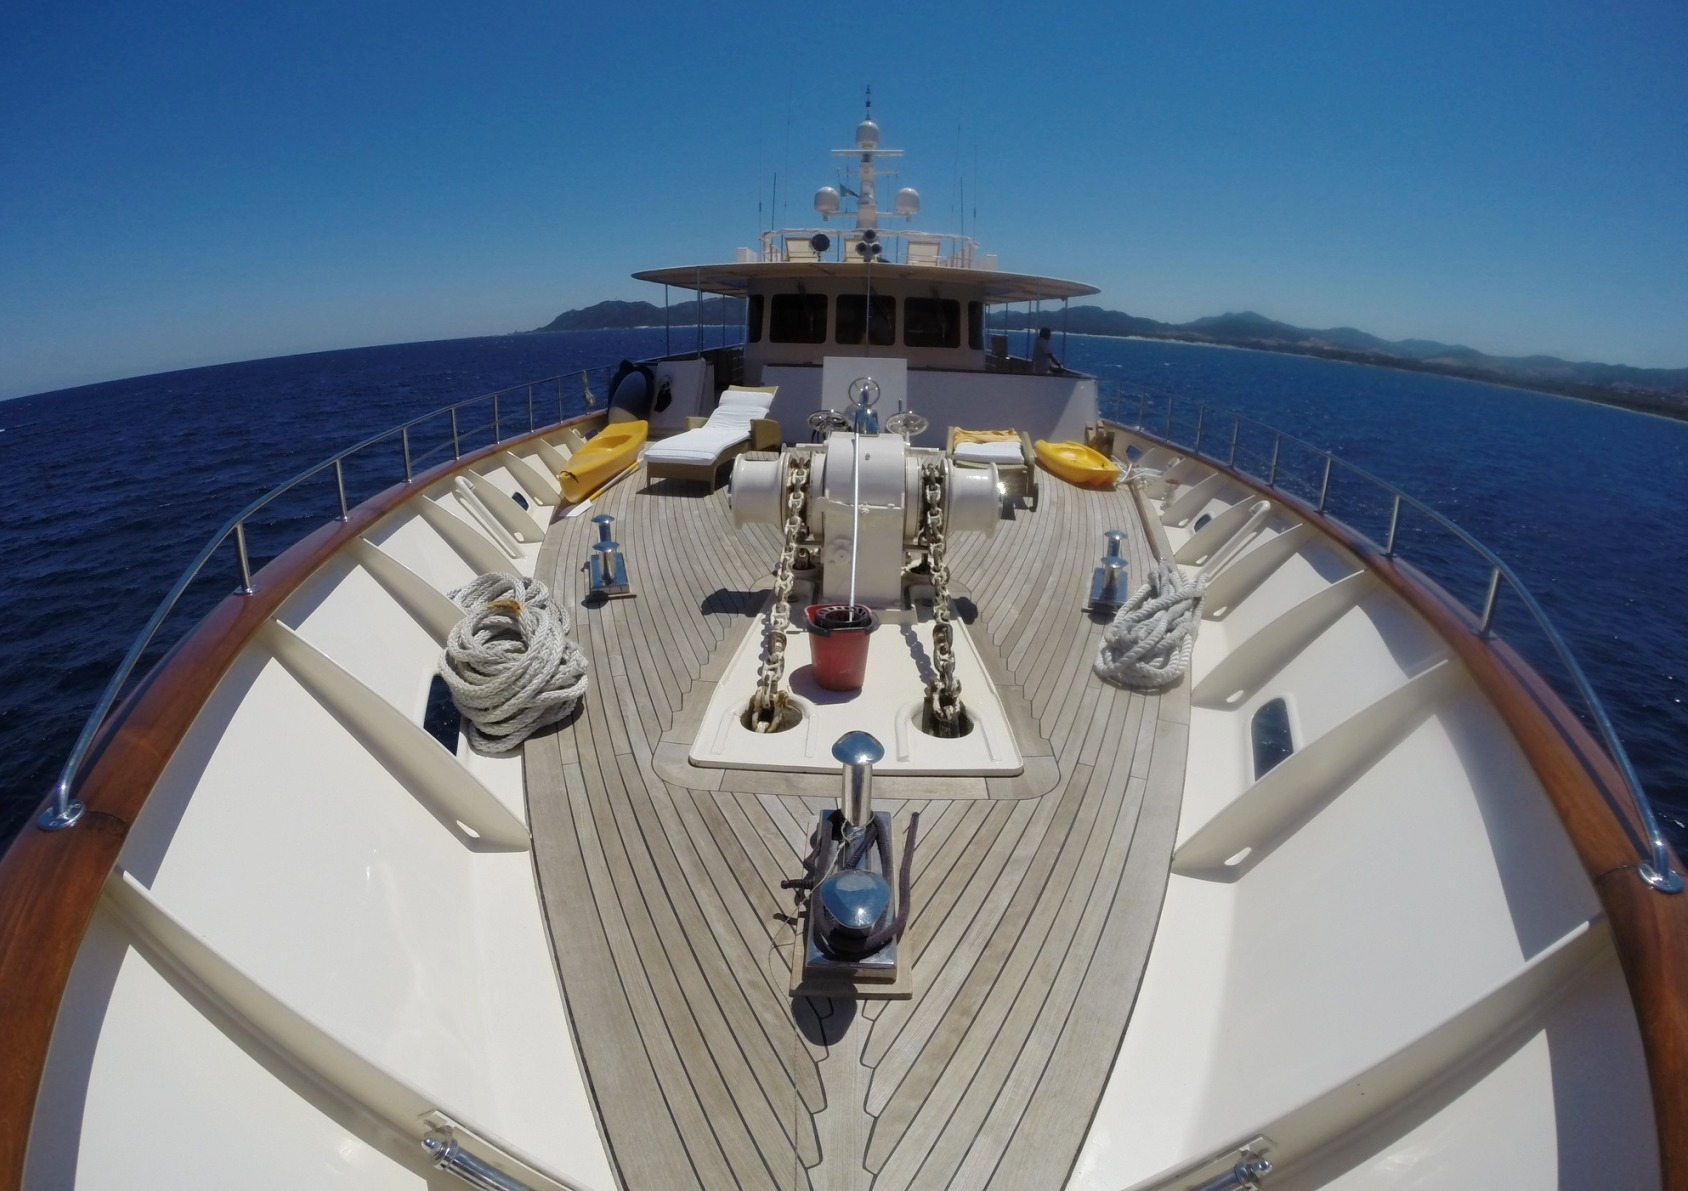 Clelands 130' Classic Expedition Yacht (1967)